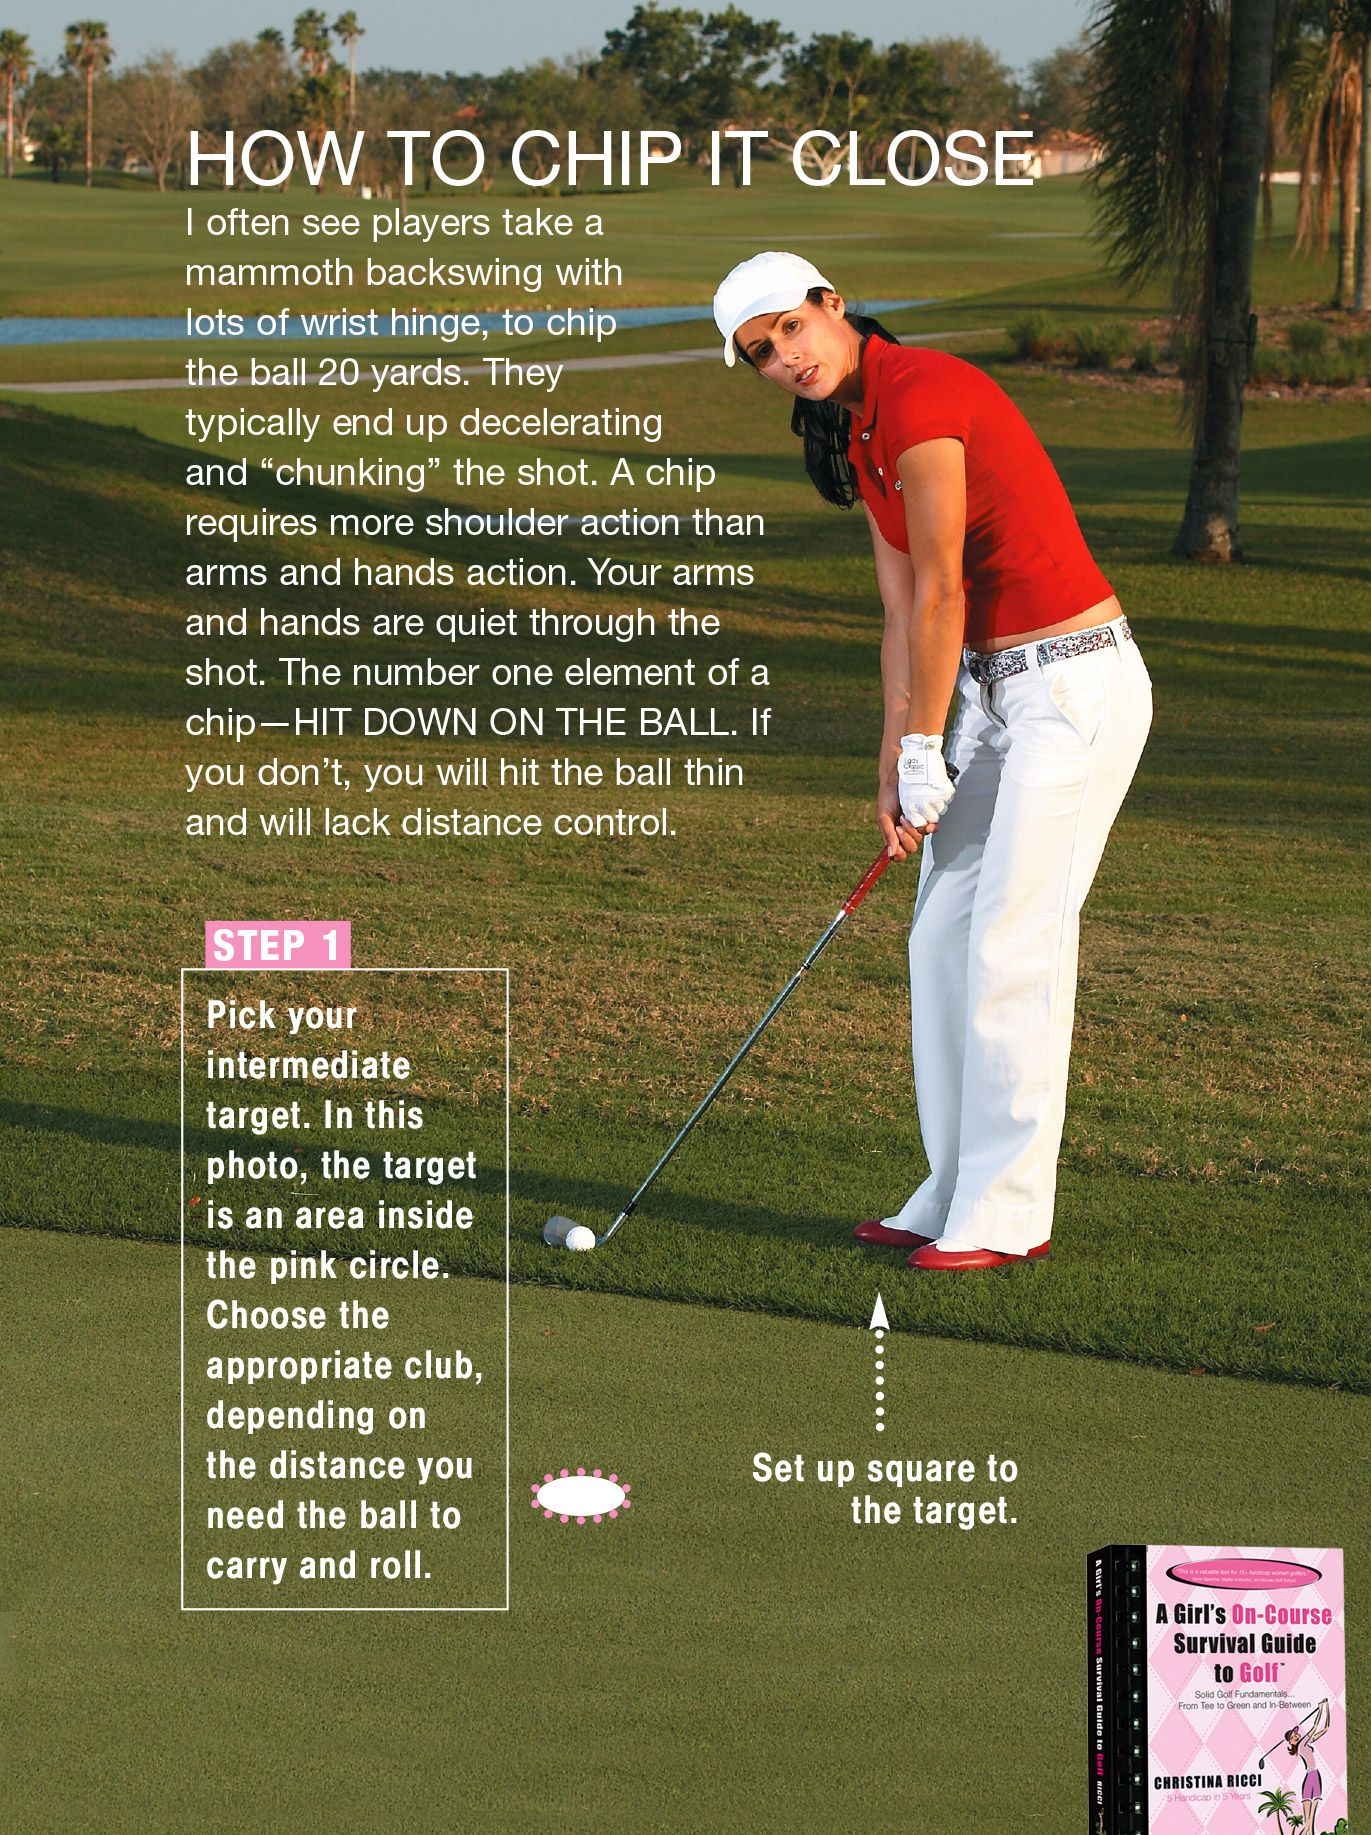 Chipping the ball close is key for lots of up and downs during a round of  golf.